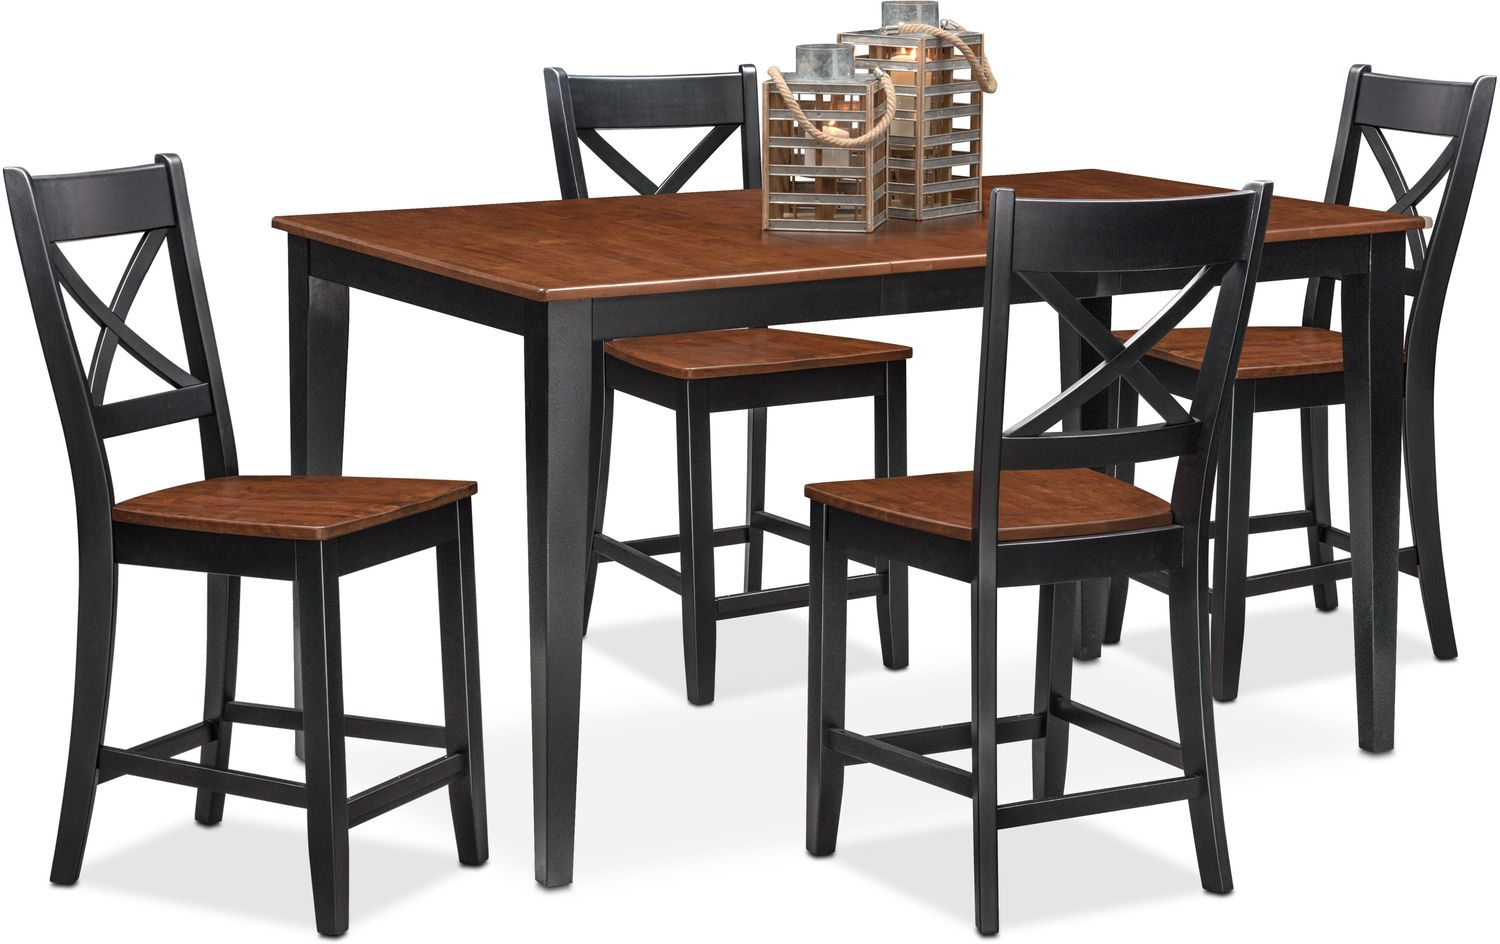 Black Dining Room Table And Chairs Nantucket Counter Height Table And 4 Side Chairs